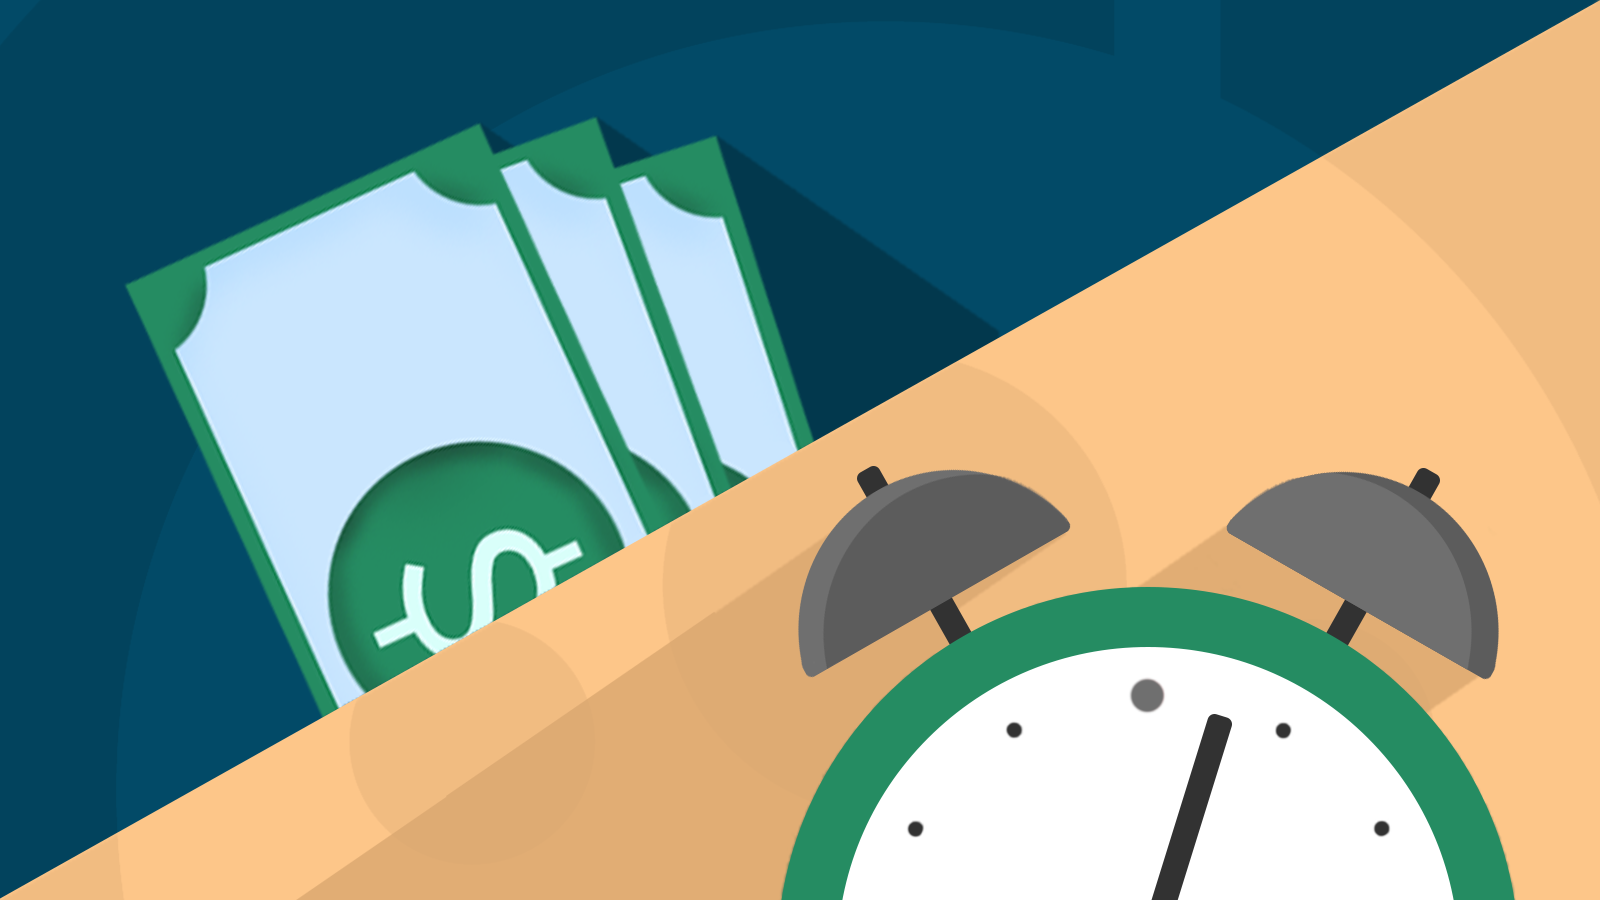 3 Things Your Team Needs From You To Stay On Time And On Budget